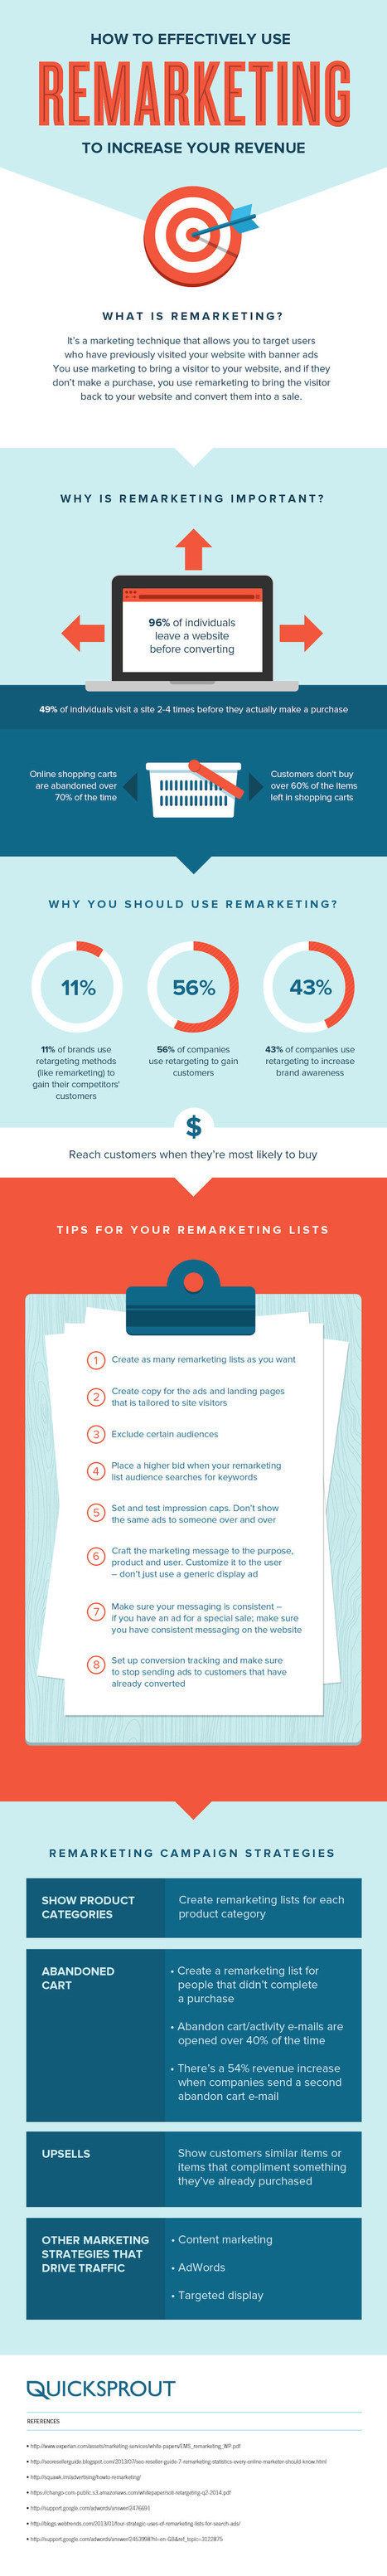 Remarketing - What it is and Why it is Important | Online Marketing Resources | Scoop.it